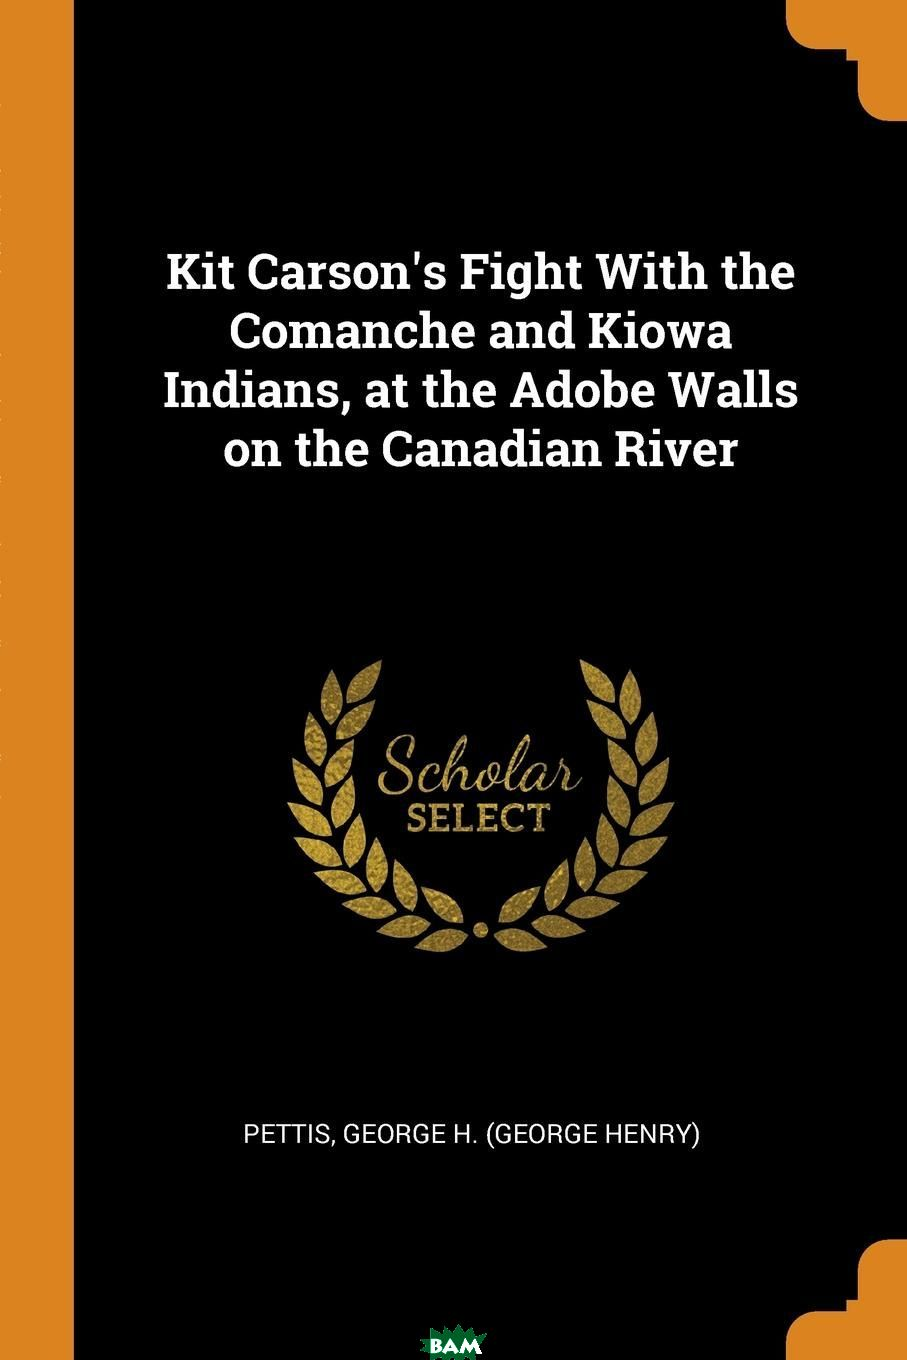 Купить Kit Carson.s Fight With the Comanche and Kiowa Indians, at the Adobe Walls on the Canadian River, Pettis George H. (George Henry), 9780341680123